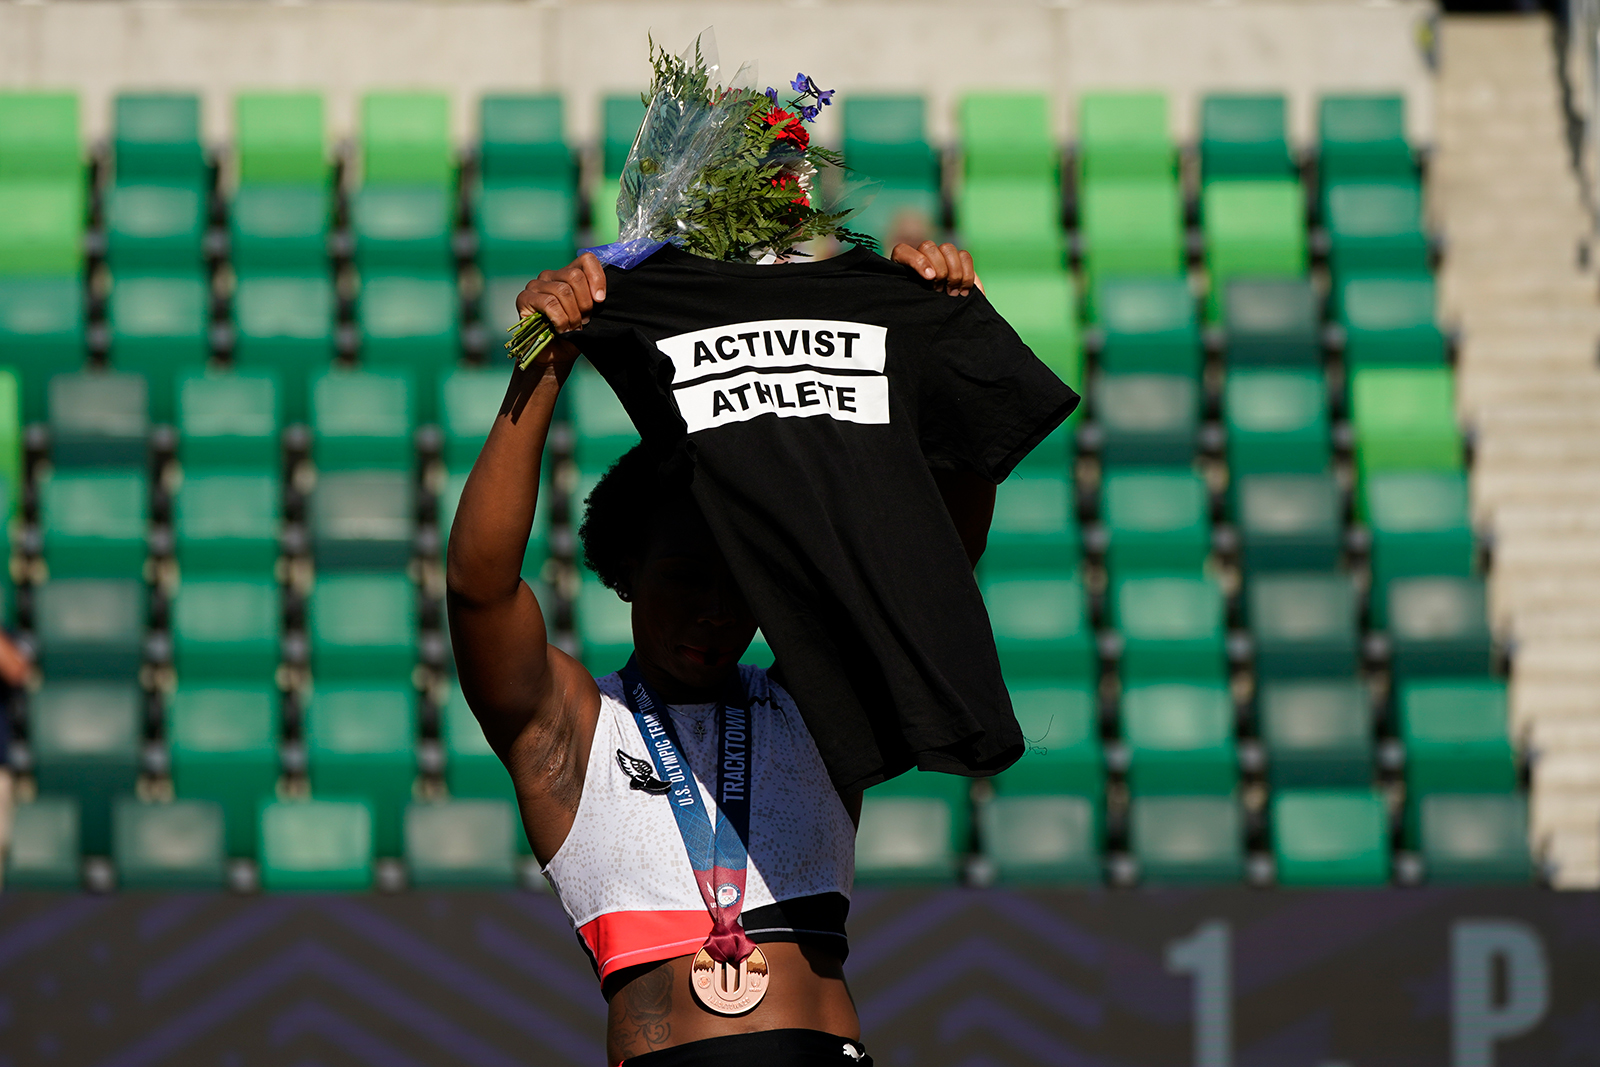 Gwendolyn Berry holds her Activist Athlete T-shirt over her head during the metal ceremony at the US Olympic Track and Field Trials on June 26, in Eugene, Oregon.